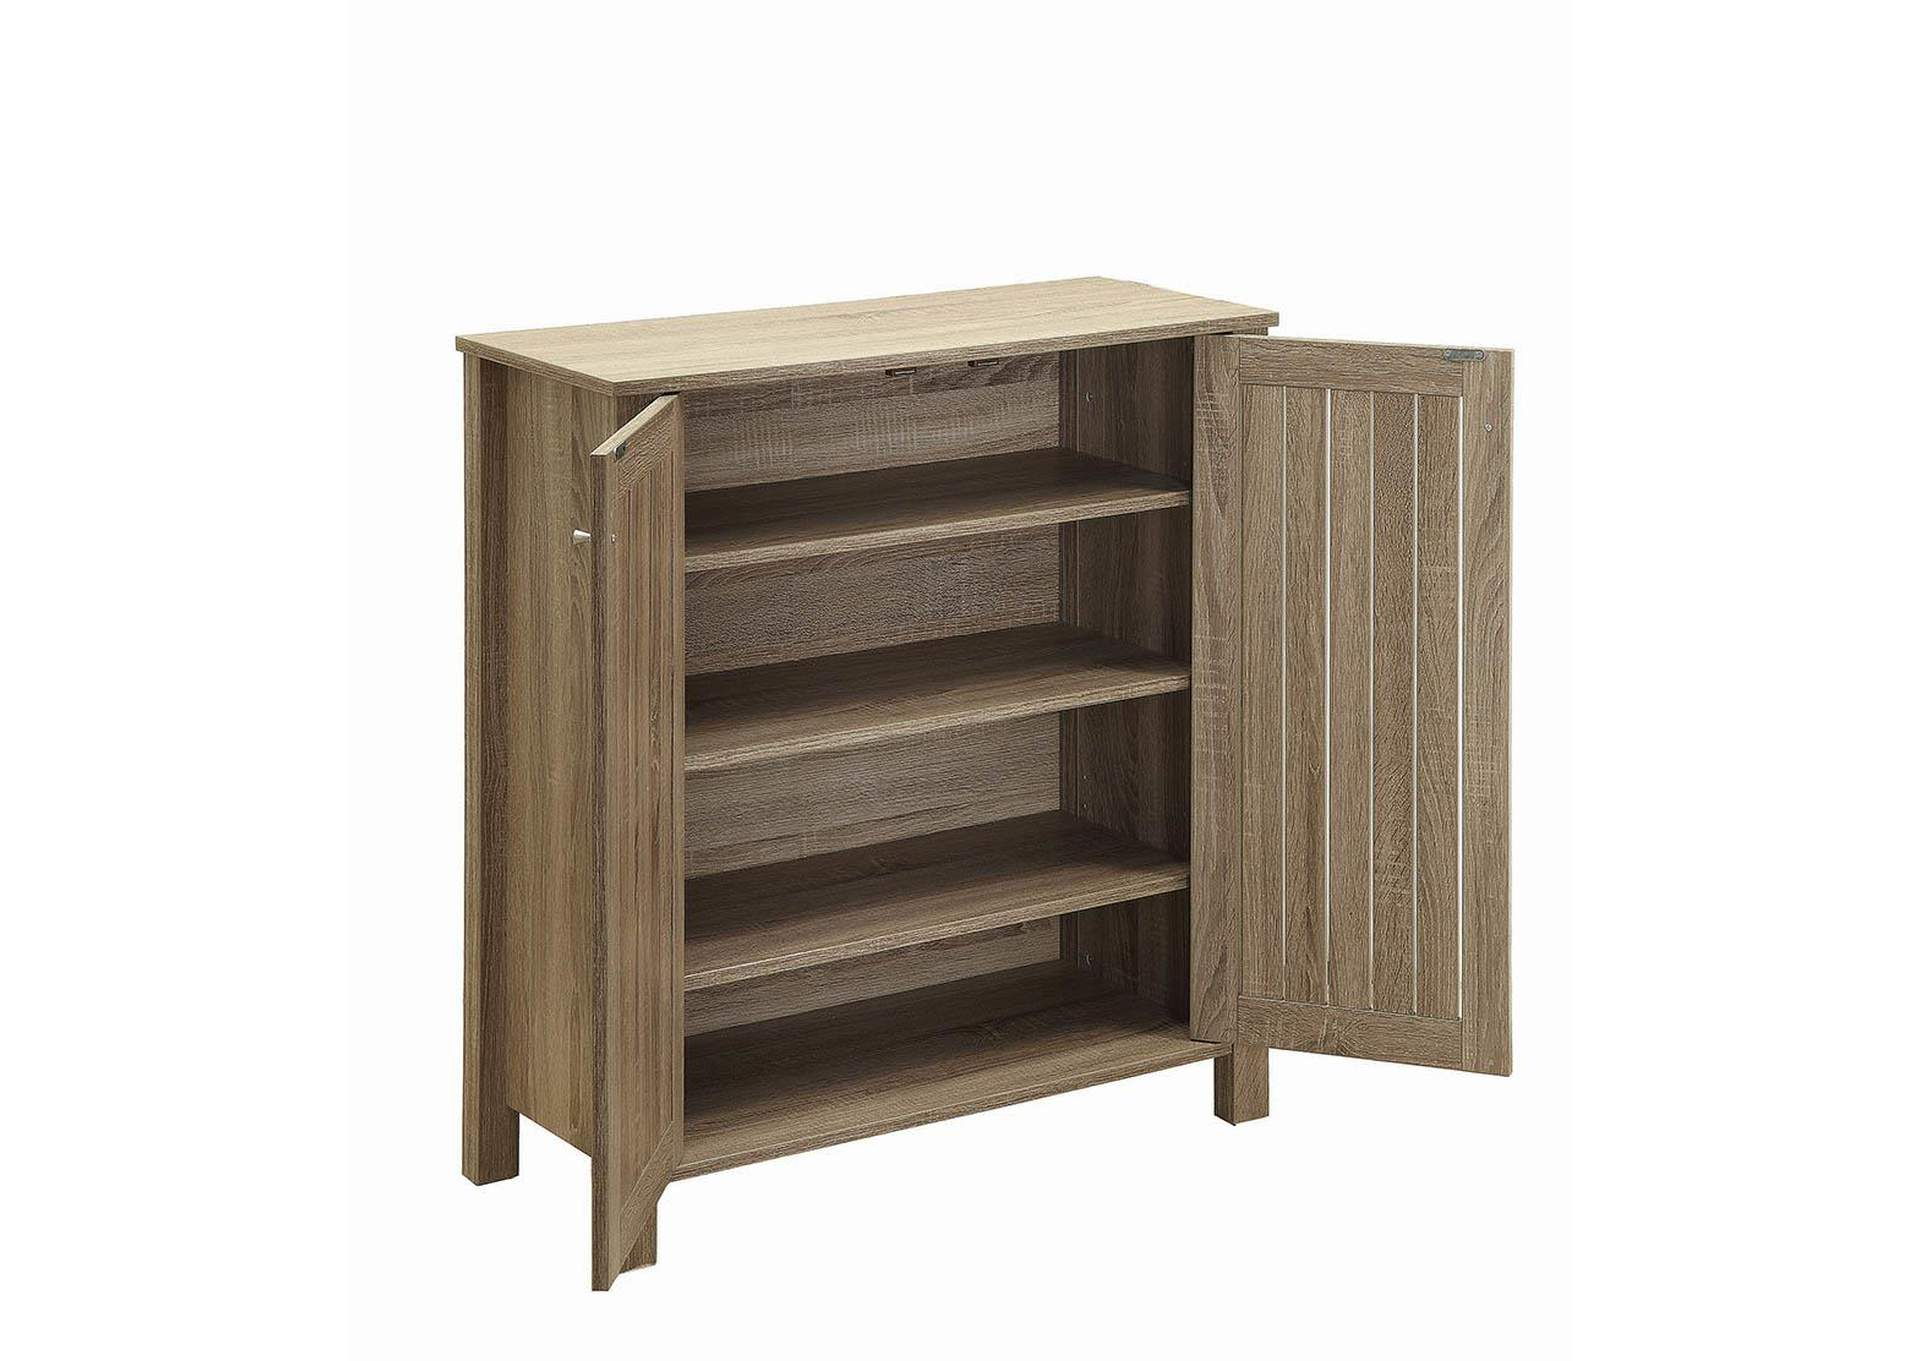 Weathered Taupe Country Two-Door Shoe Storage,Coaster Furniture